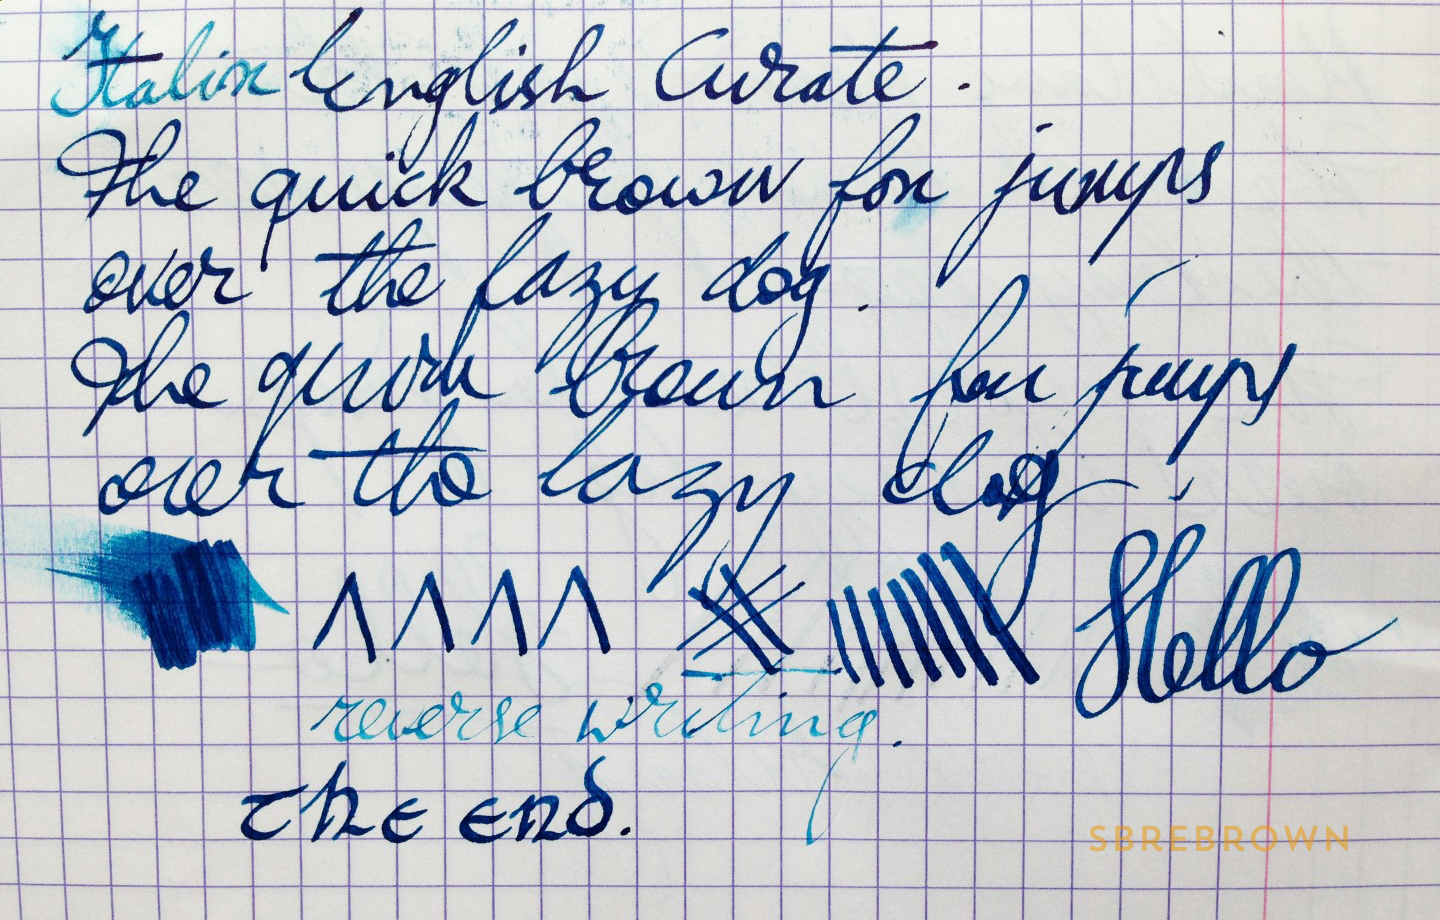 Italix English Curate Fountain Pen Review (1)